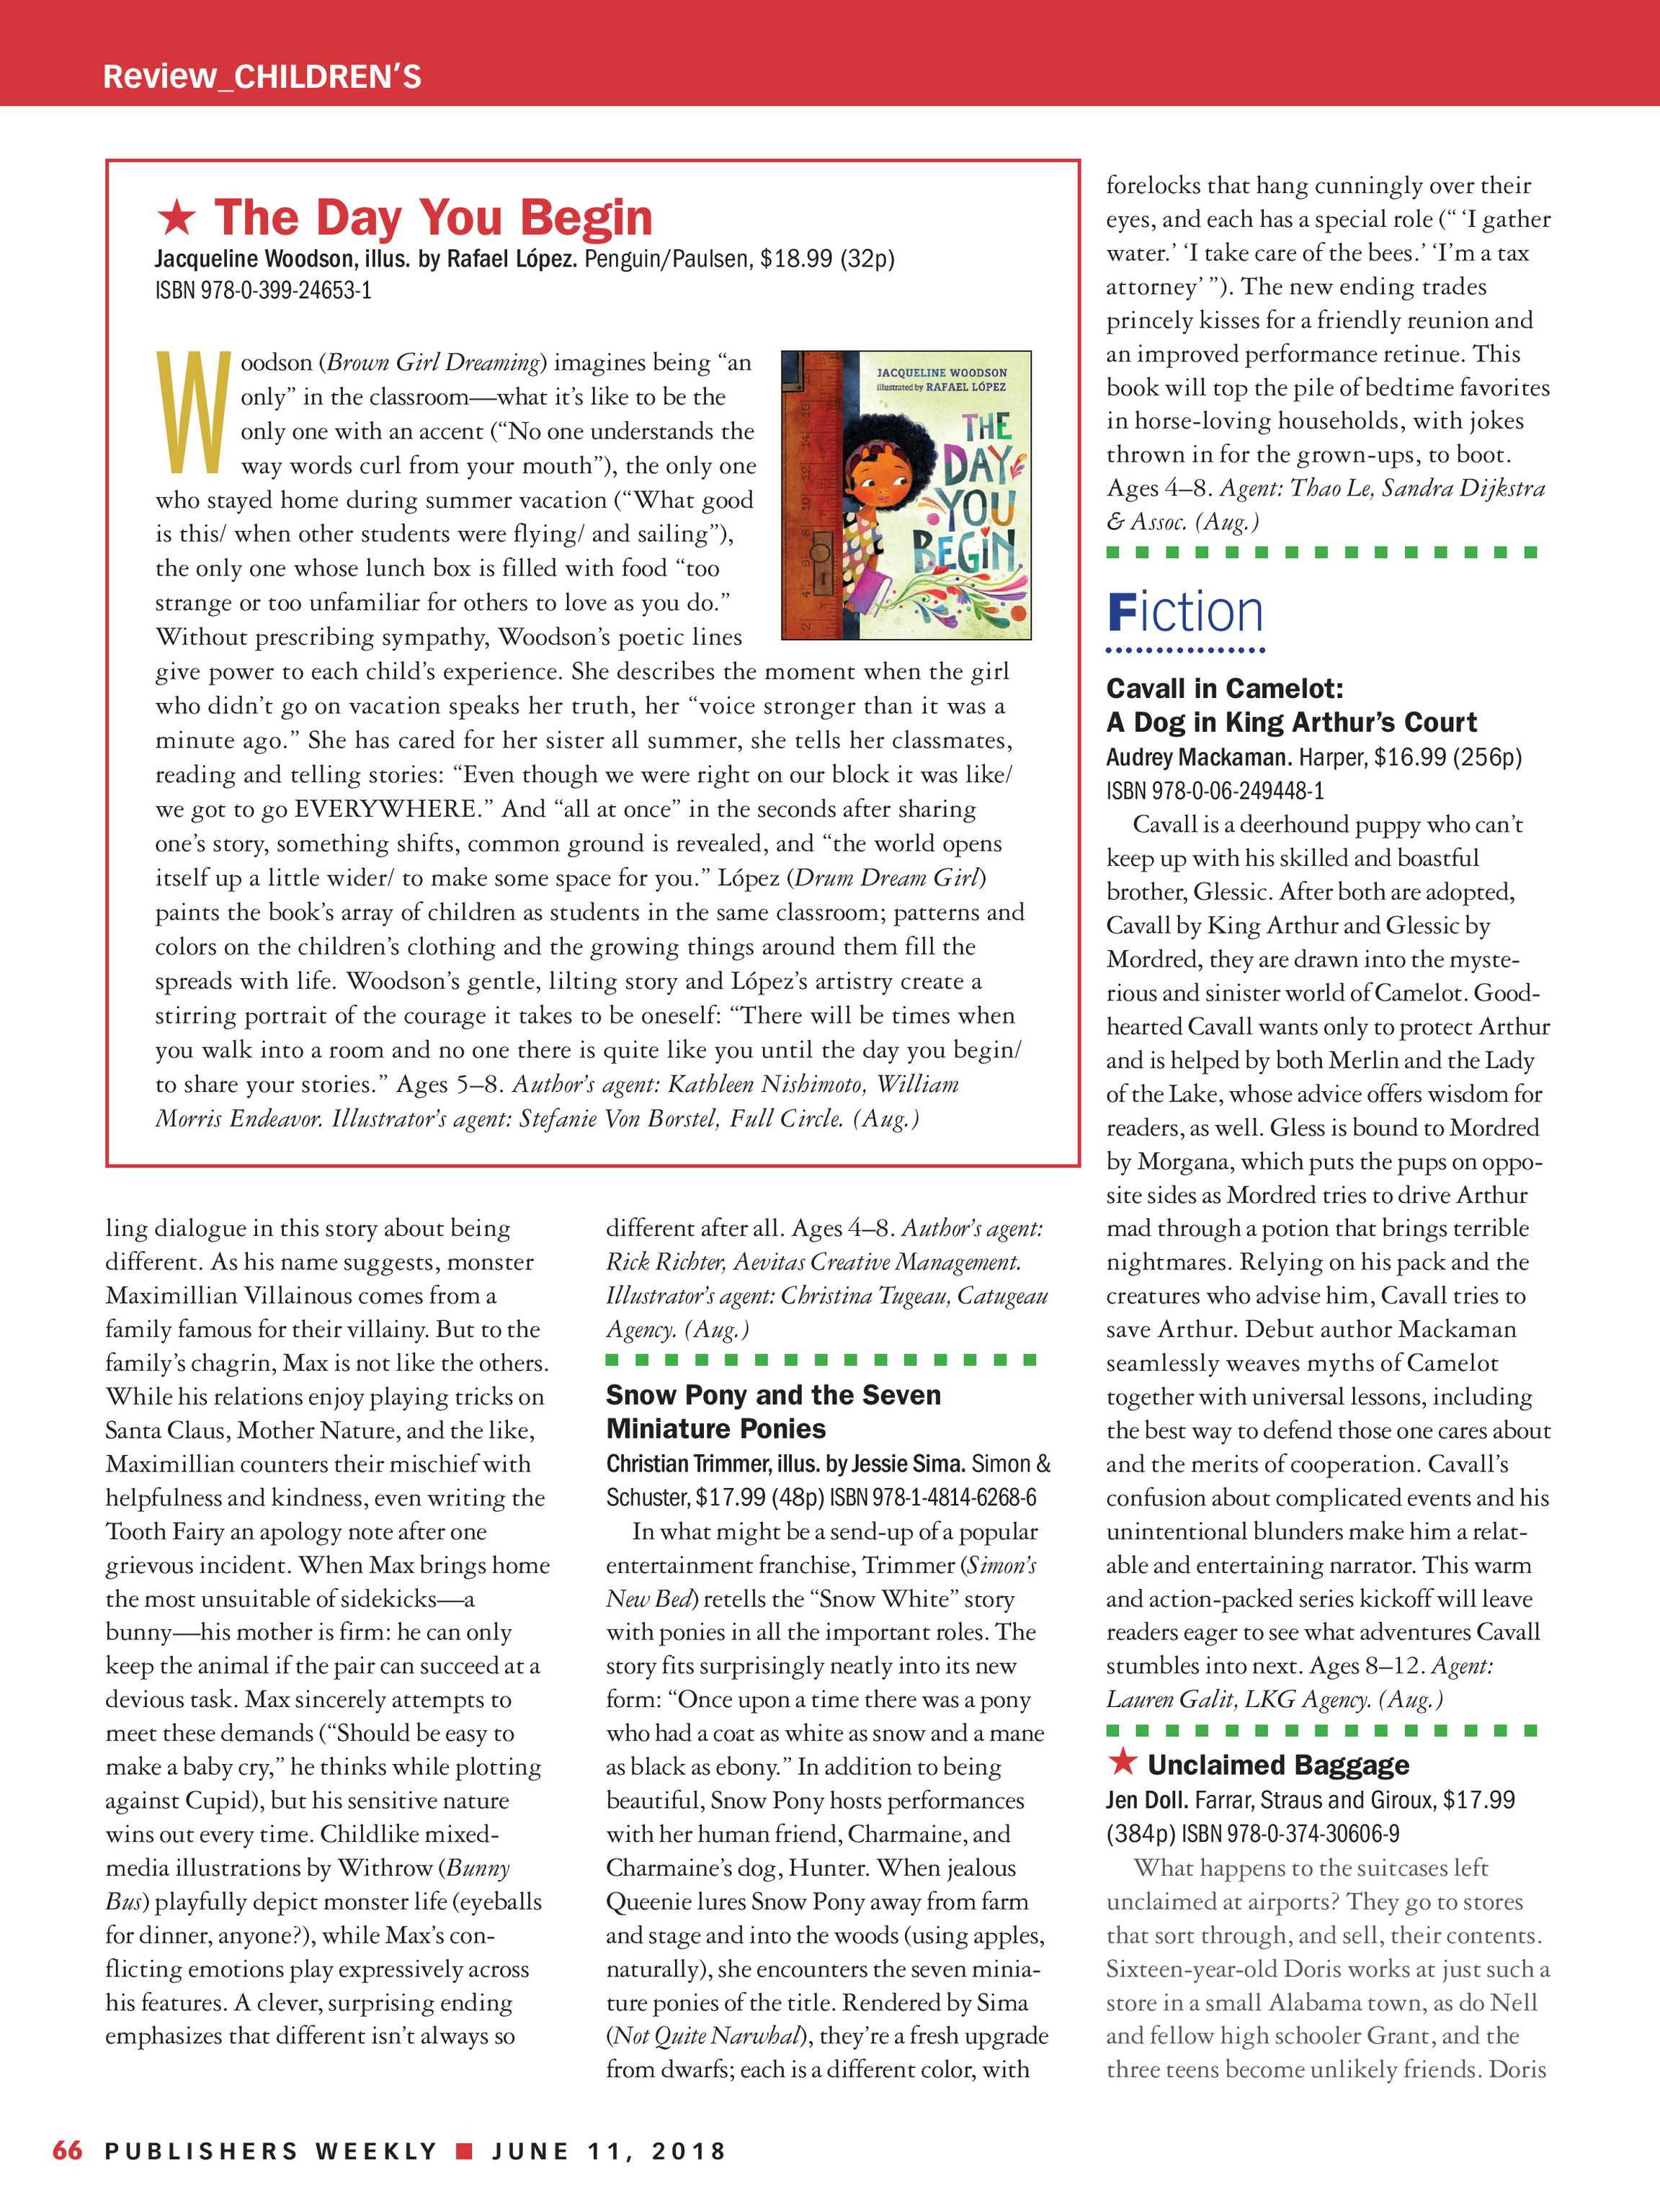 Publishers Weekly - June 11, 2018 - page 66